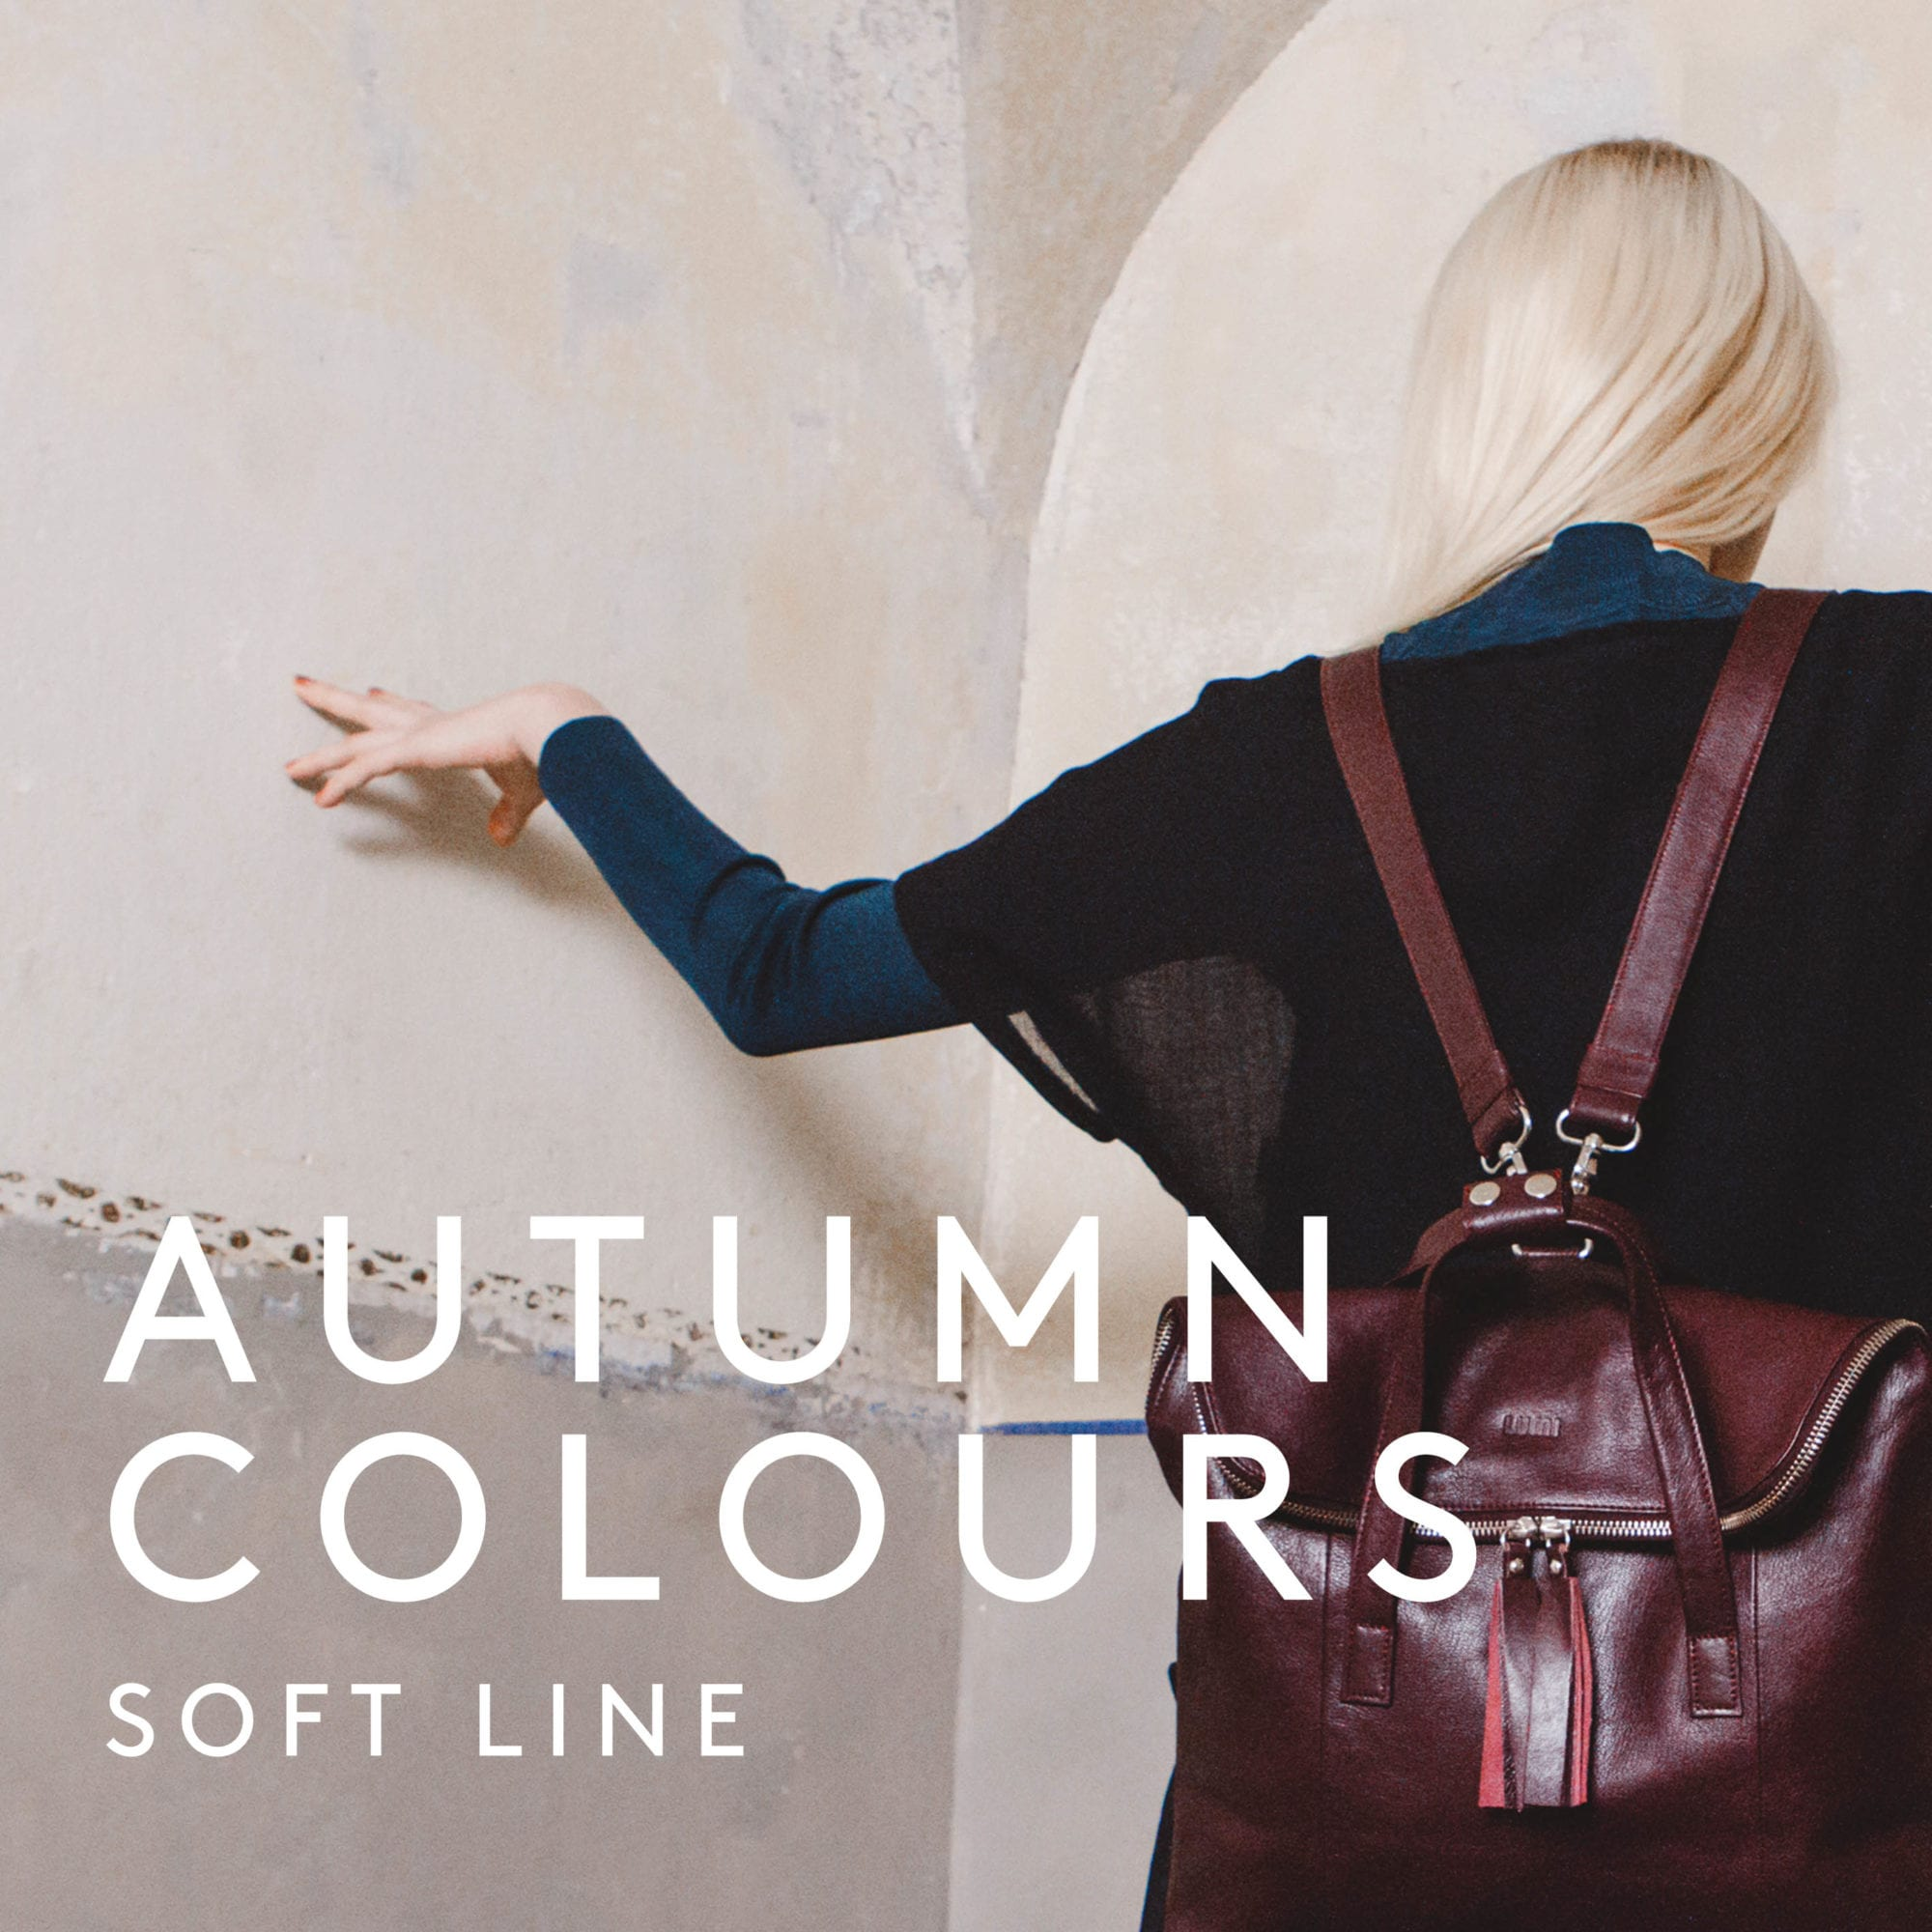 New autumnal colours for LUMI Soft Line handbags and accessories.